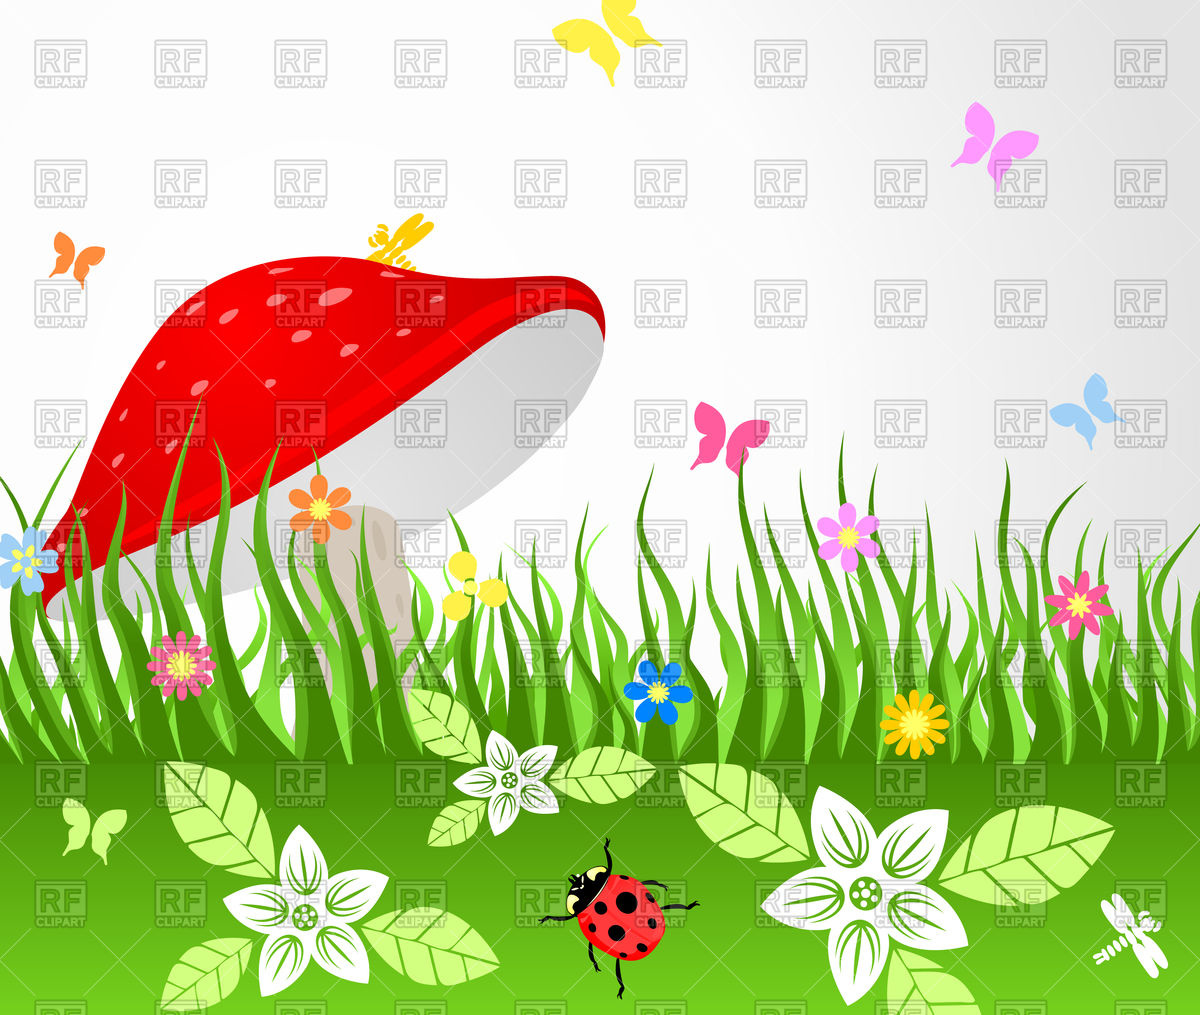 Meadow with red mushroom Vector Image #79099.